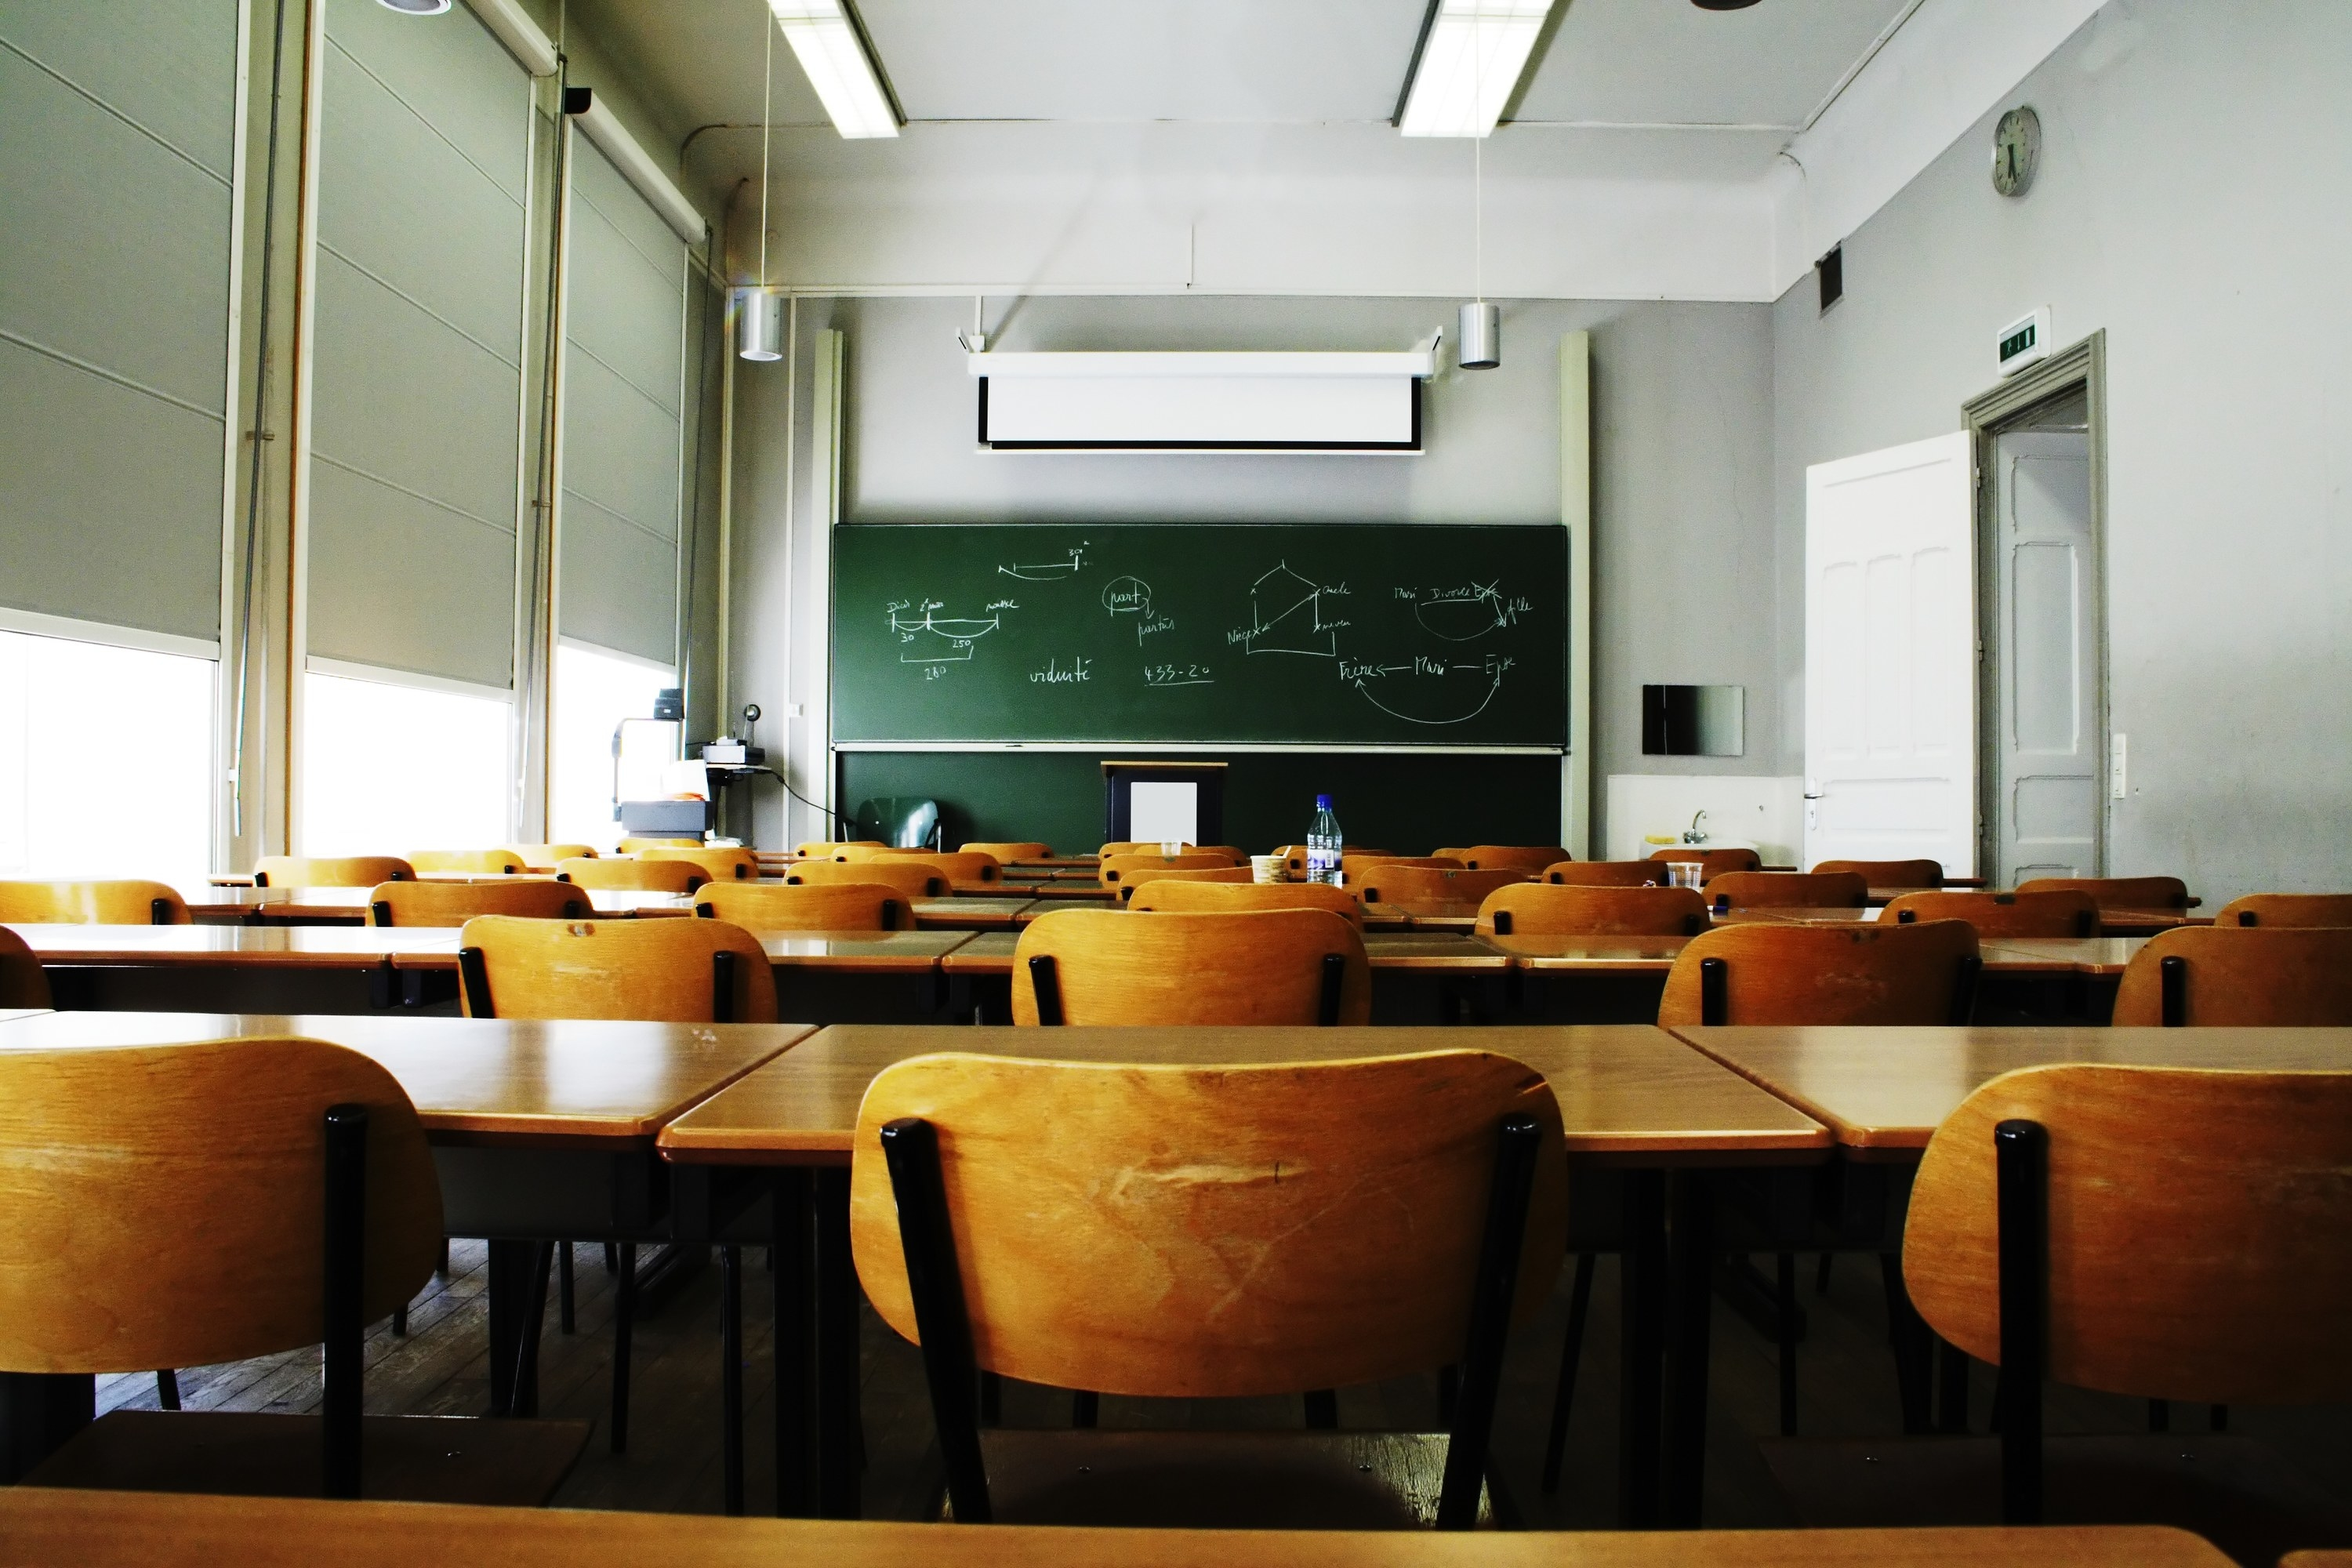 An empty classroom in the morning light